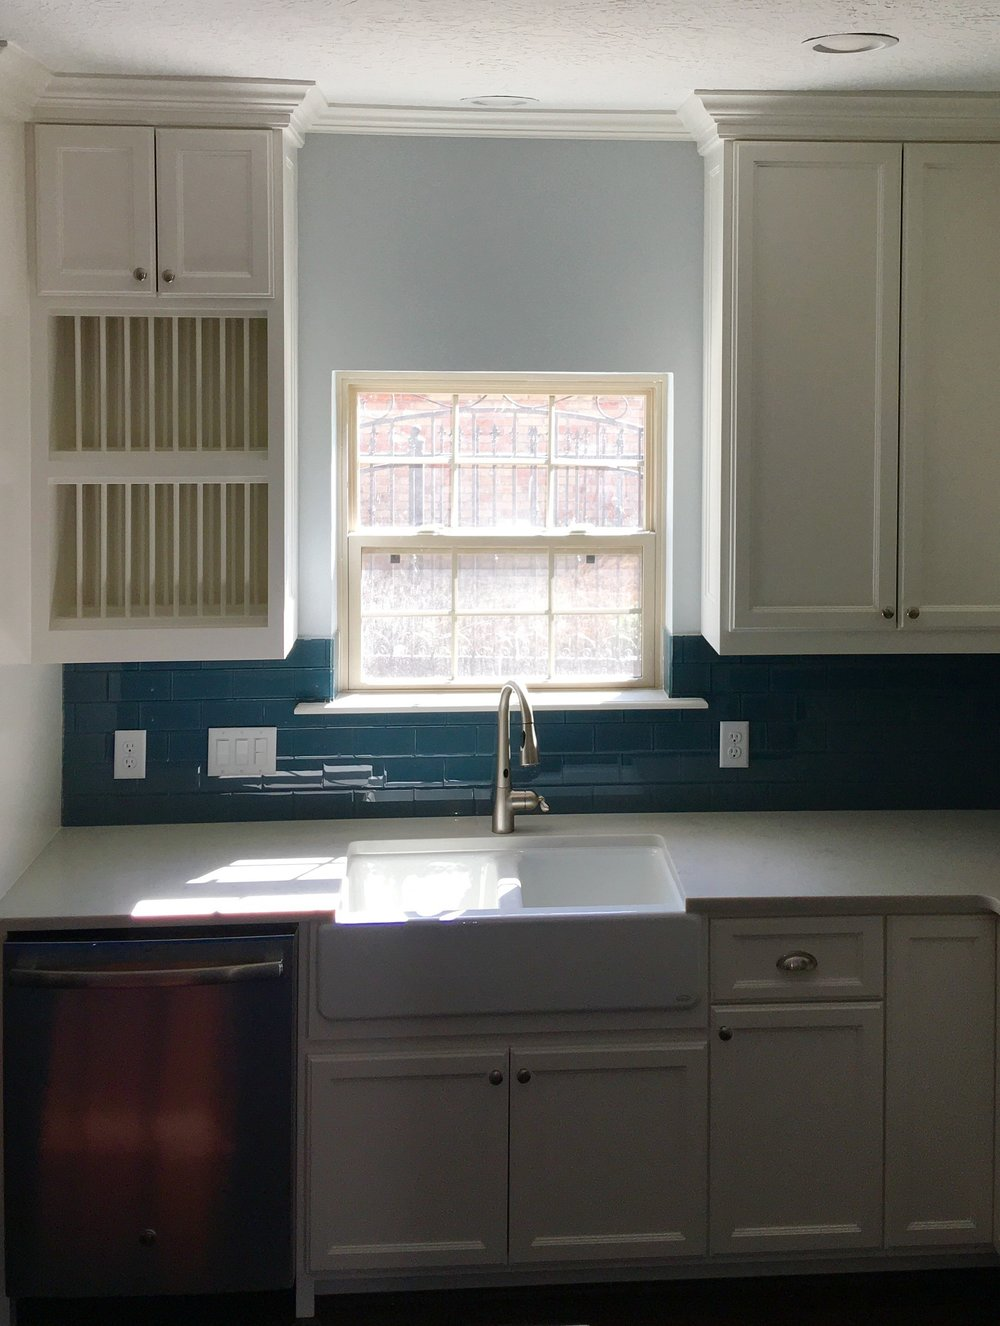 Kitchen Sink Cabinetry.jpg